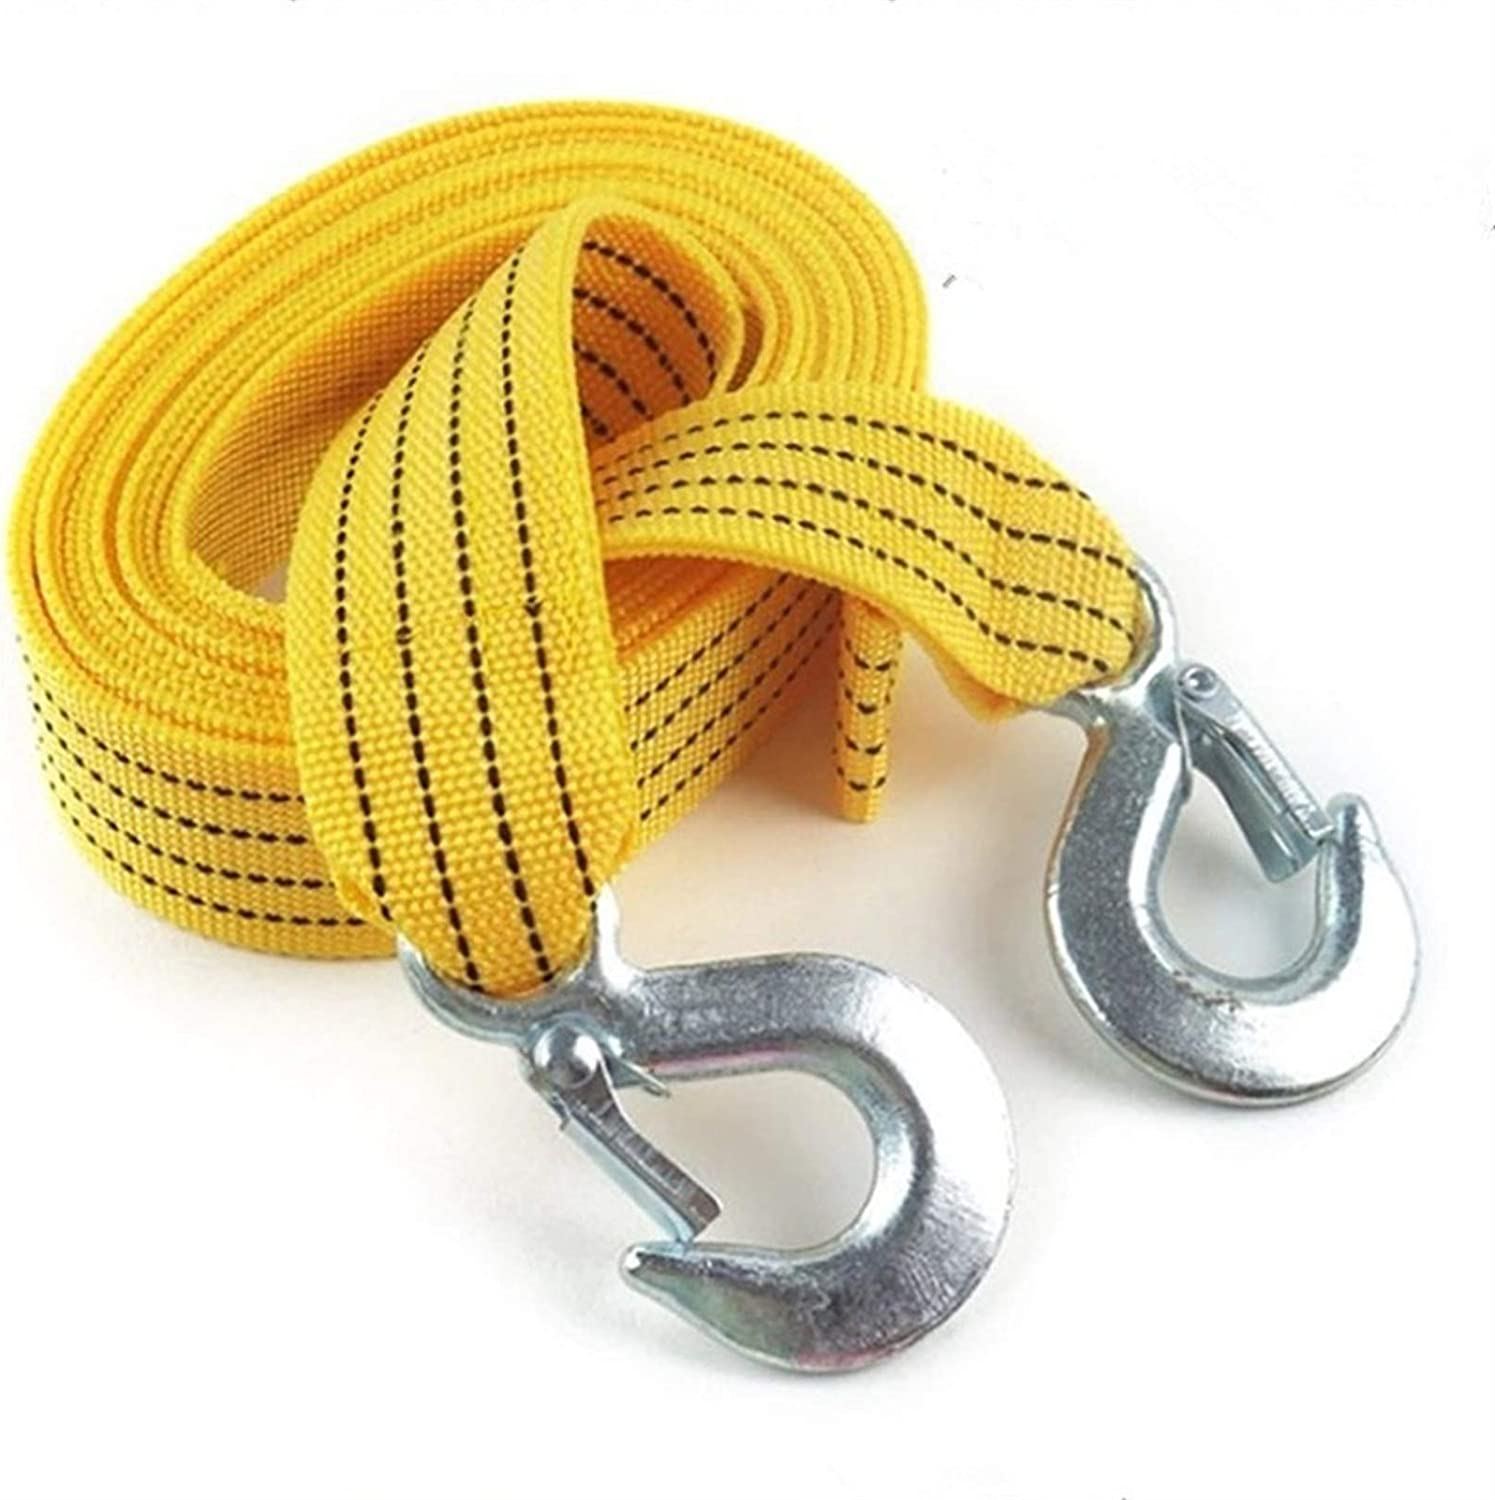 ZHU-CL Winch Rope 4M Heavy Duty 2021 new 5 Cable Car Tow Pull Ton Towing Max 81% OFF